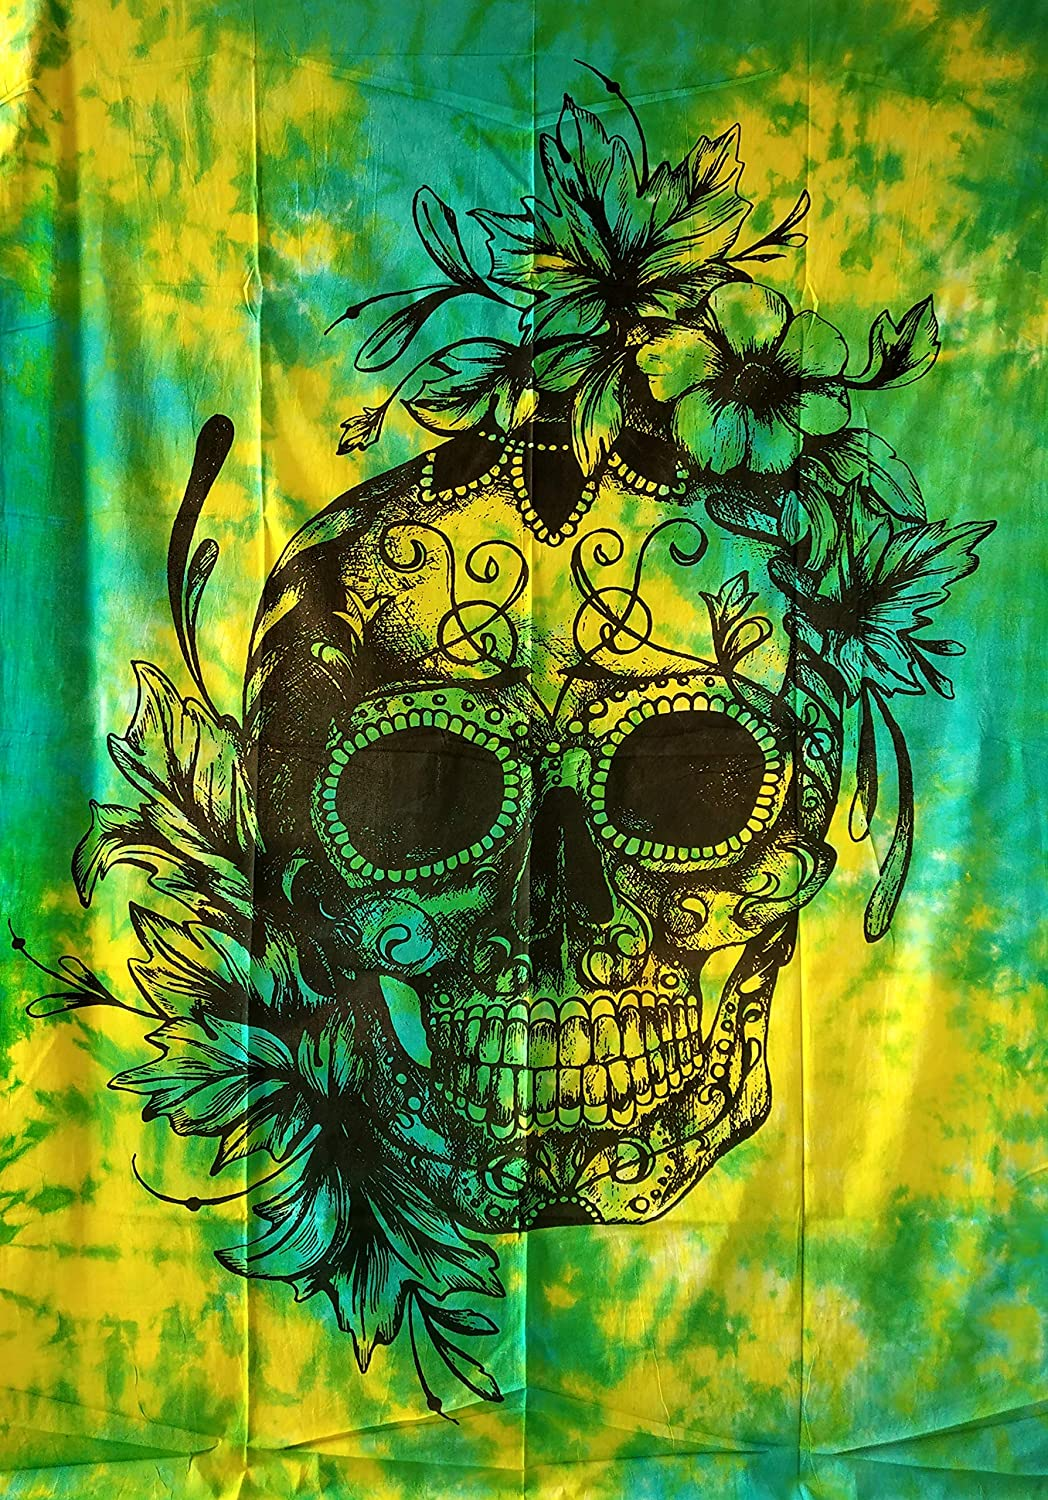 Indian Craft Castle ICC Black and White Skull Tapestry Sugar Grateful Dead Tapestry Human Skeleton Wall Decor Hippie Green